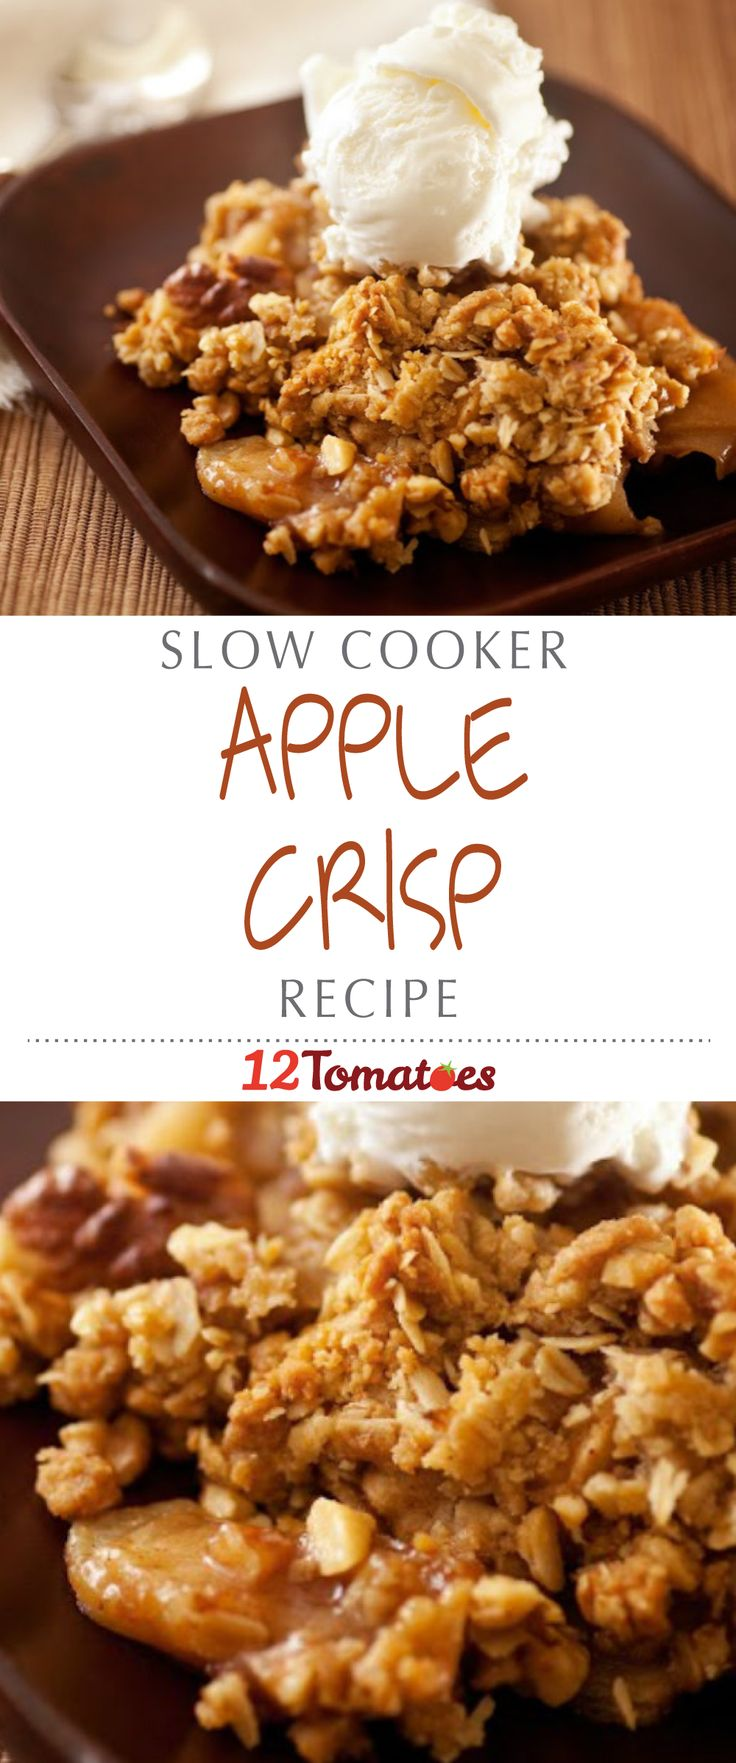 Slow Cooker Apple Crisp | Warm their tummies and satisfy your own sweet tooth with a slow cooker apple cinnamon crisp featuring the goodness of walnuts, apples, oatmeal, and sugar.